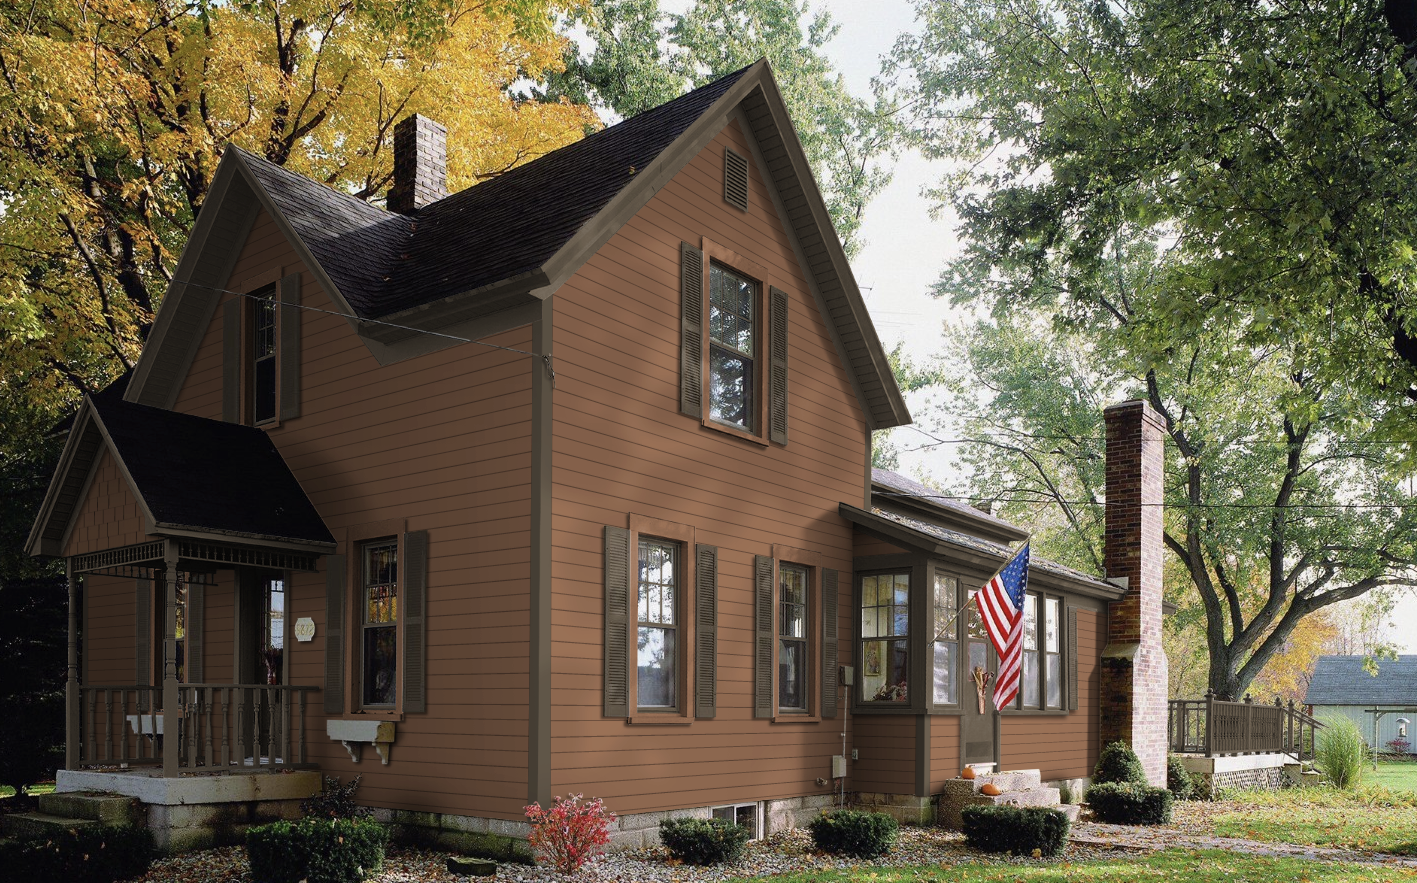 clay colored siding